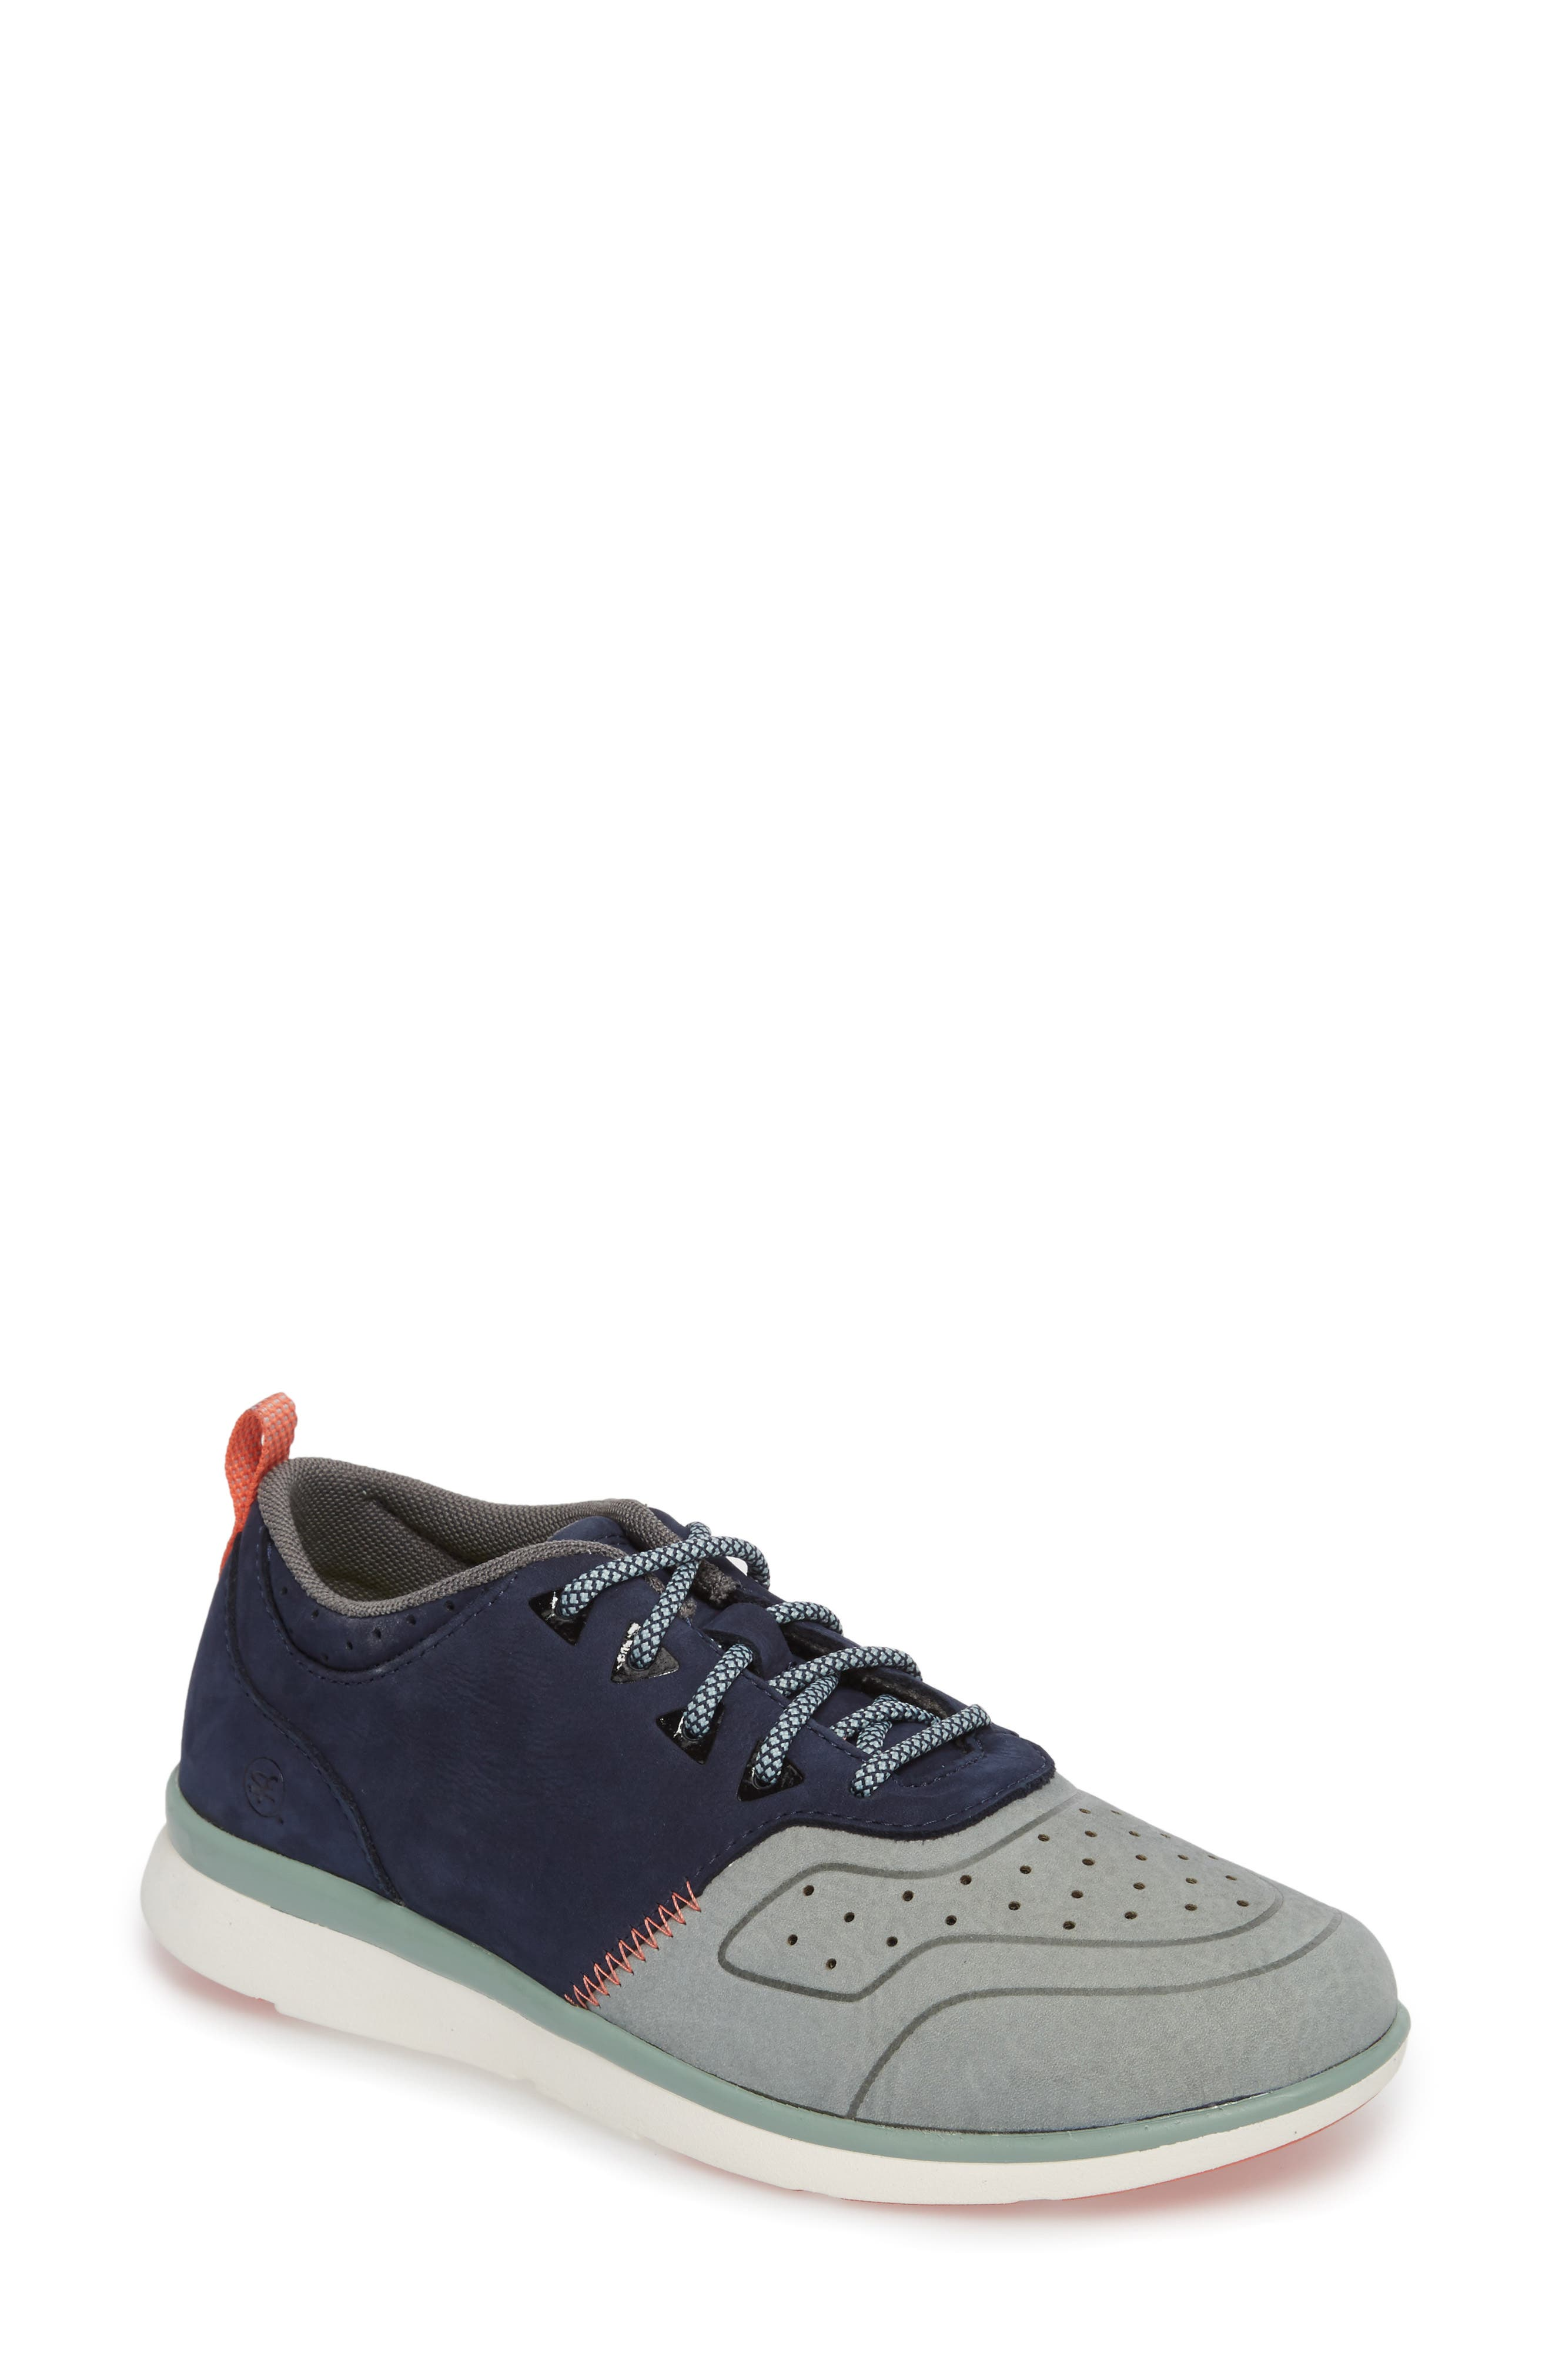 Beech Sneaker,                         Main,                         color, Blue Leather